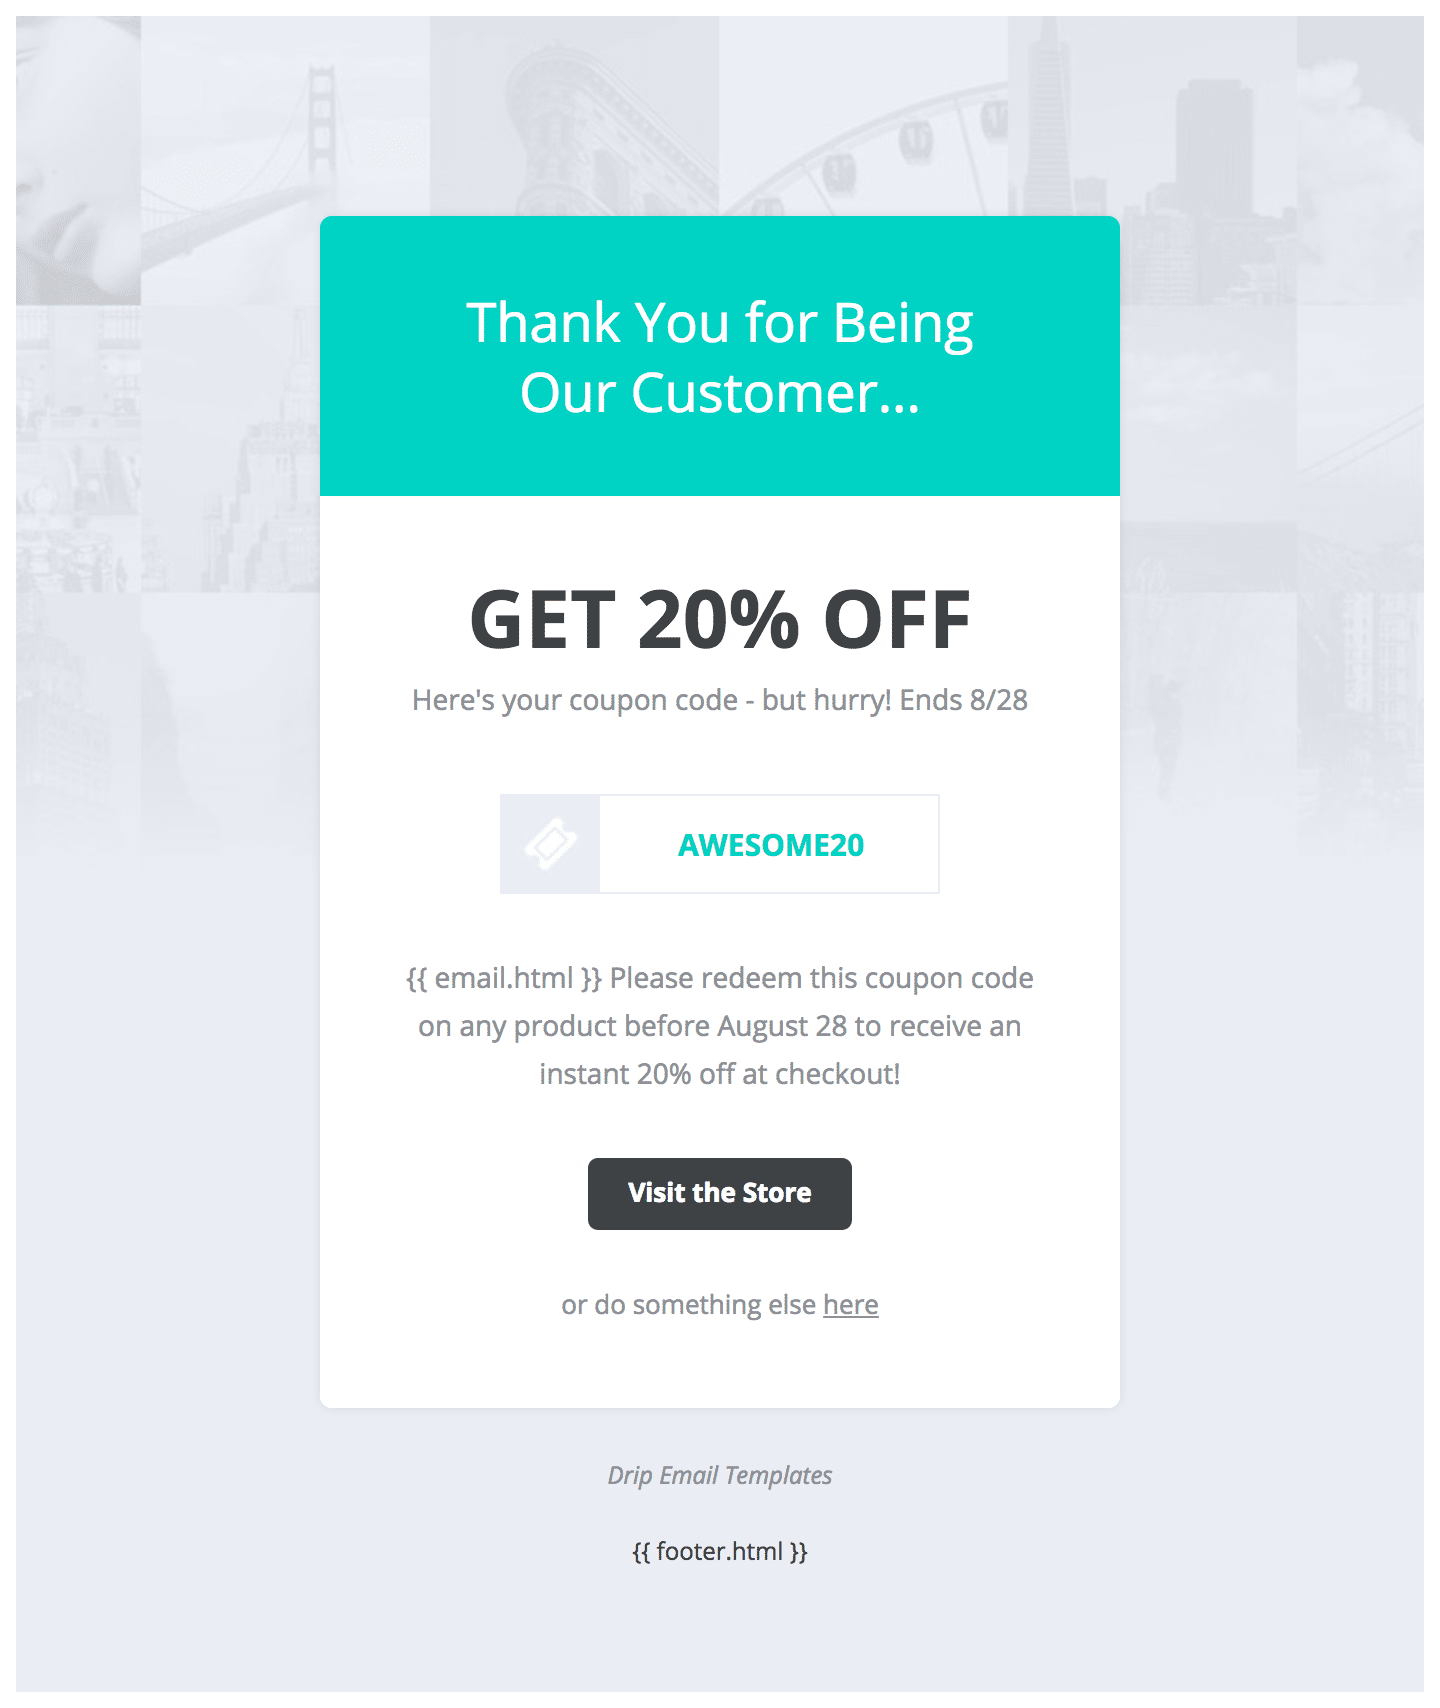 Drip Email Templates - Easy to Import Drip Email Templates